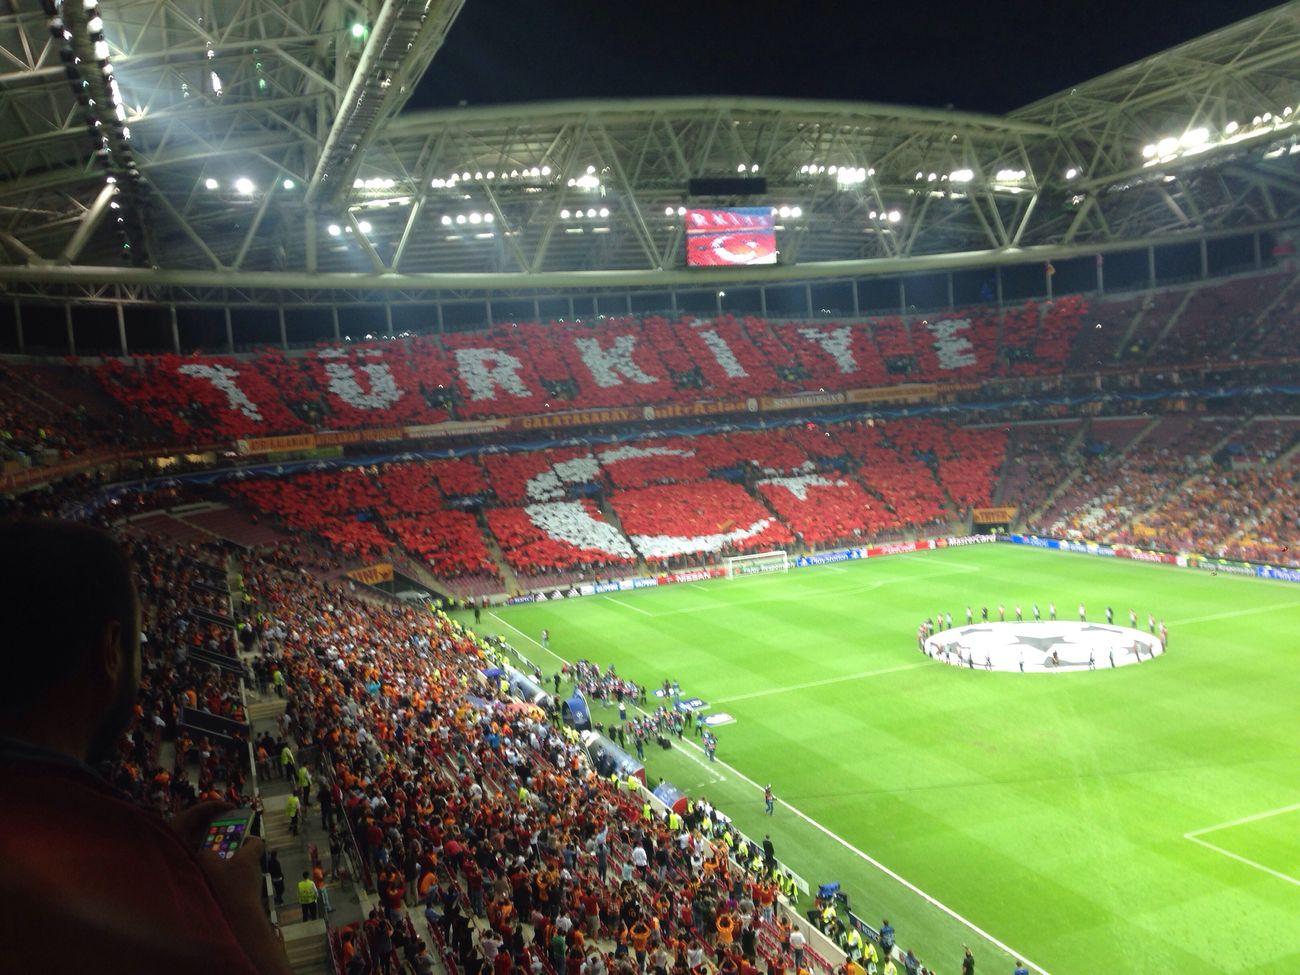 GalataSaray Cimbom Turktelekomarena Turkey Stadium Football Champions Champion Uefacup Supercup Uefasupercup Fans Fanatic Sarikirmizi Ultraaslan Galatasaray Cimbom 💛❤️ GALATASARAY1905 Cimbombom Transportation Night Travel Mode Of Transport Journey Multi Colored Tourism City Life Dark History Outdoors Flying Colorful Famous Place Crowd Aerial View